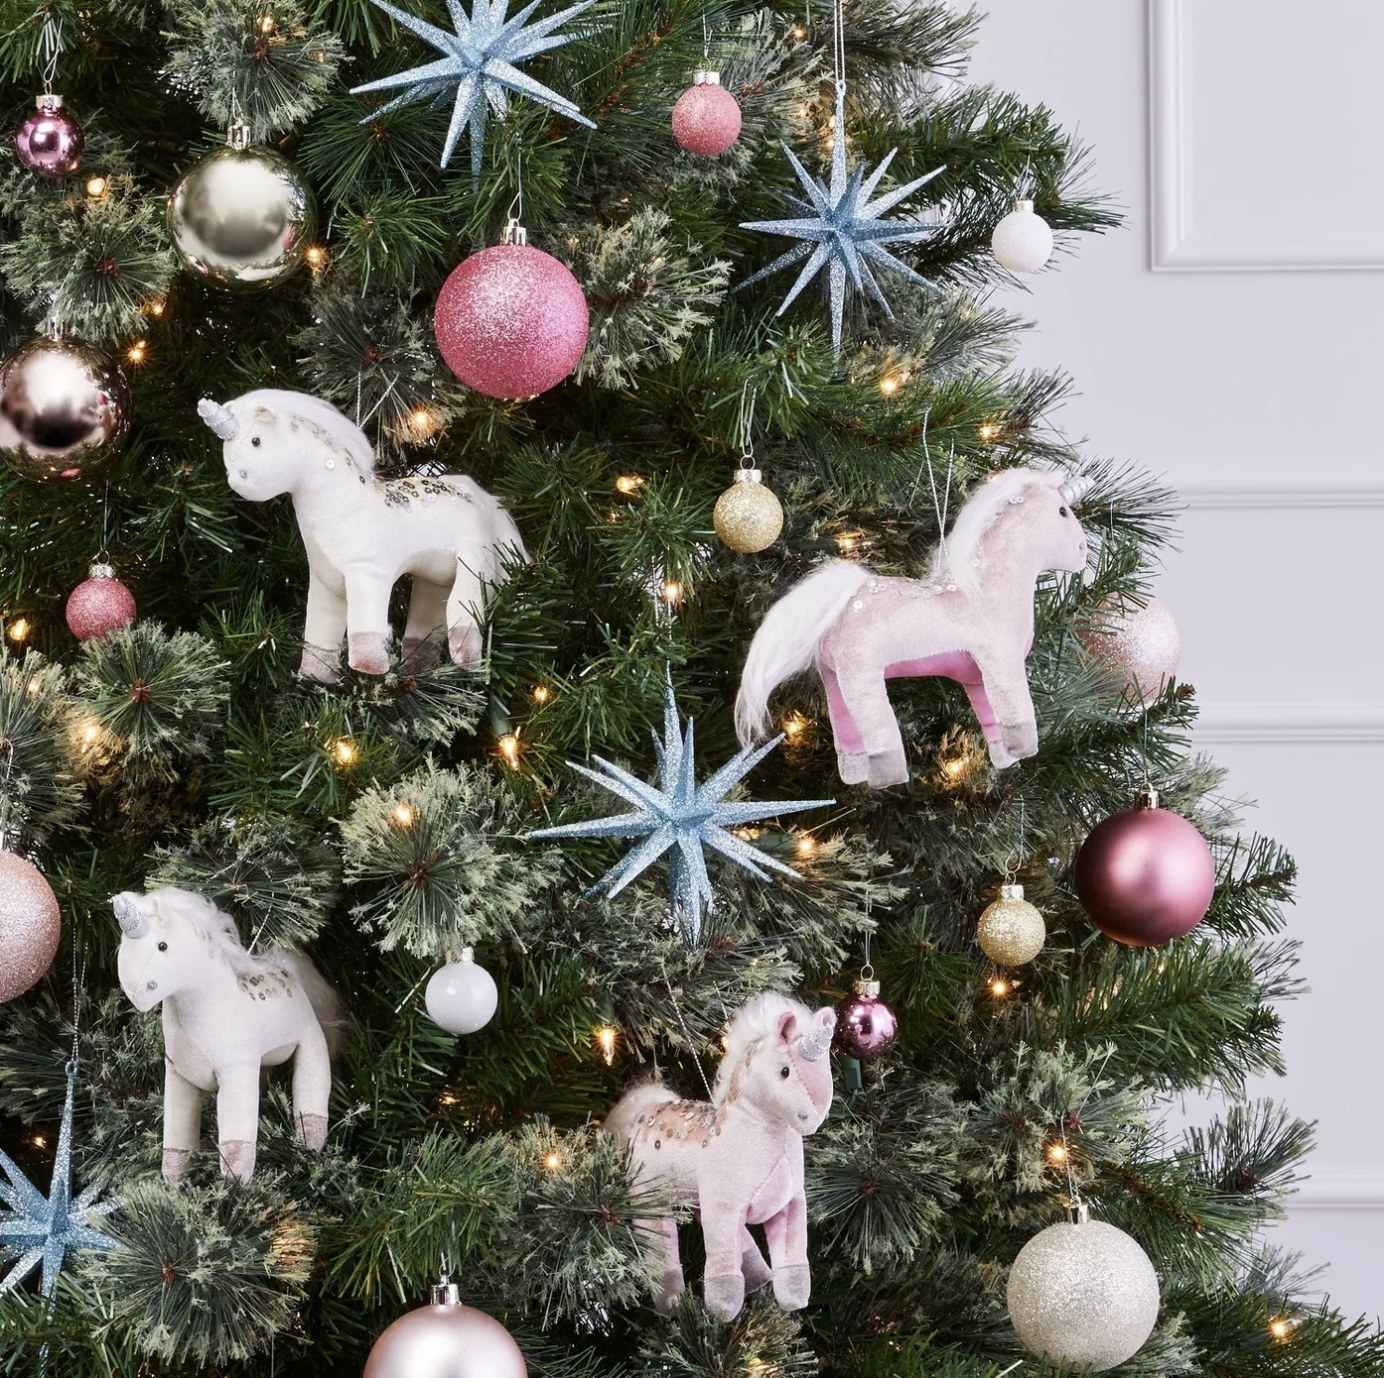 The ornaments on a Christmas tree